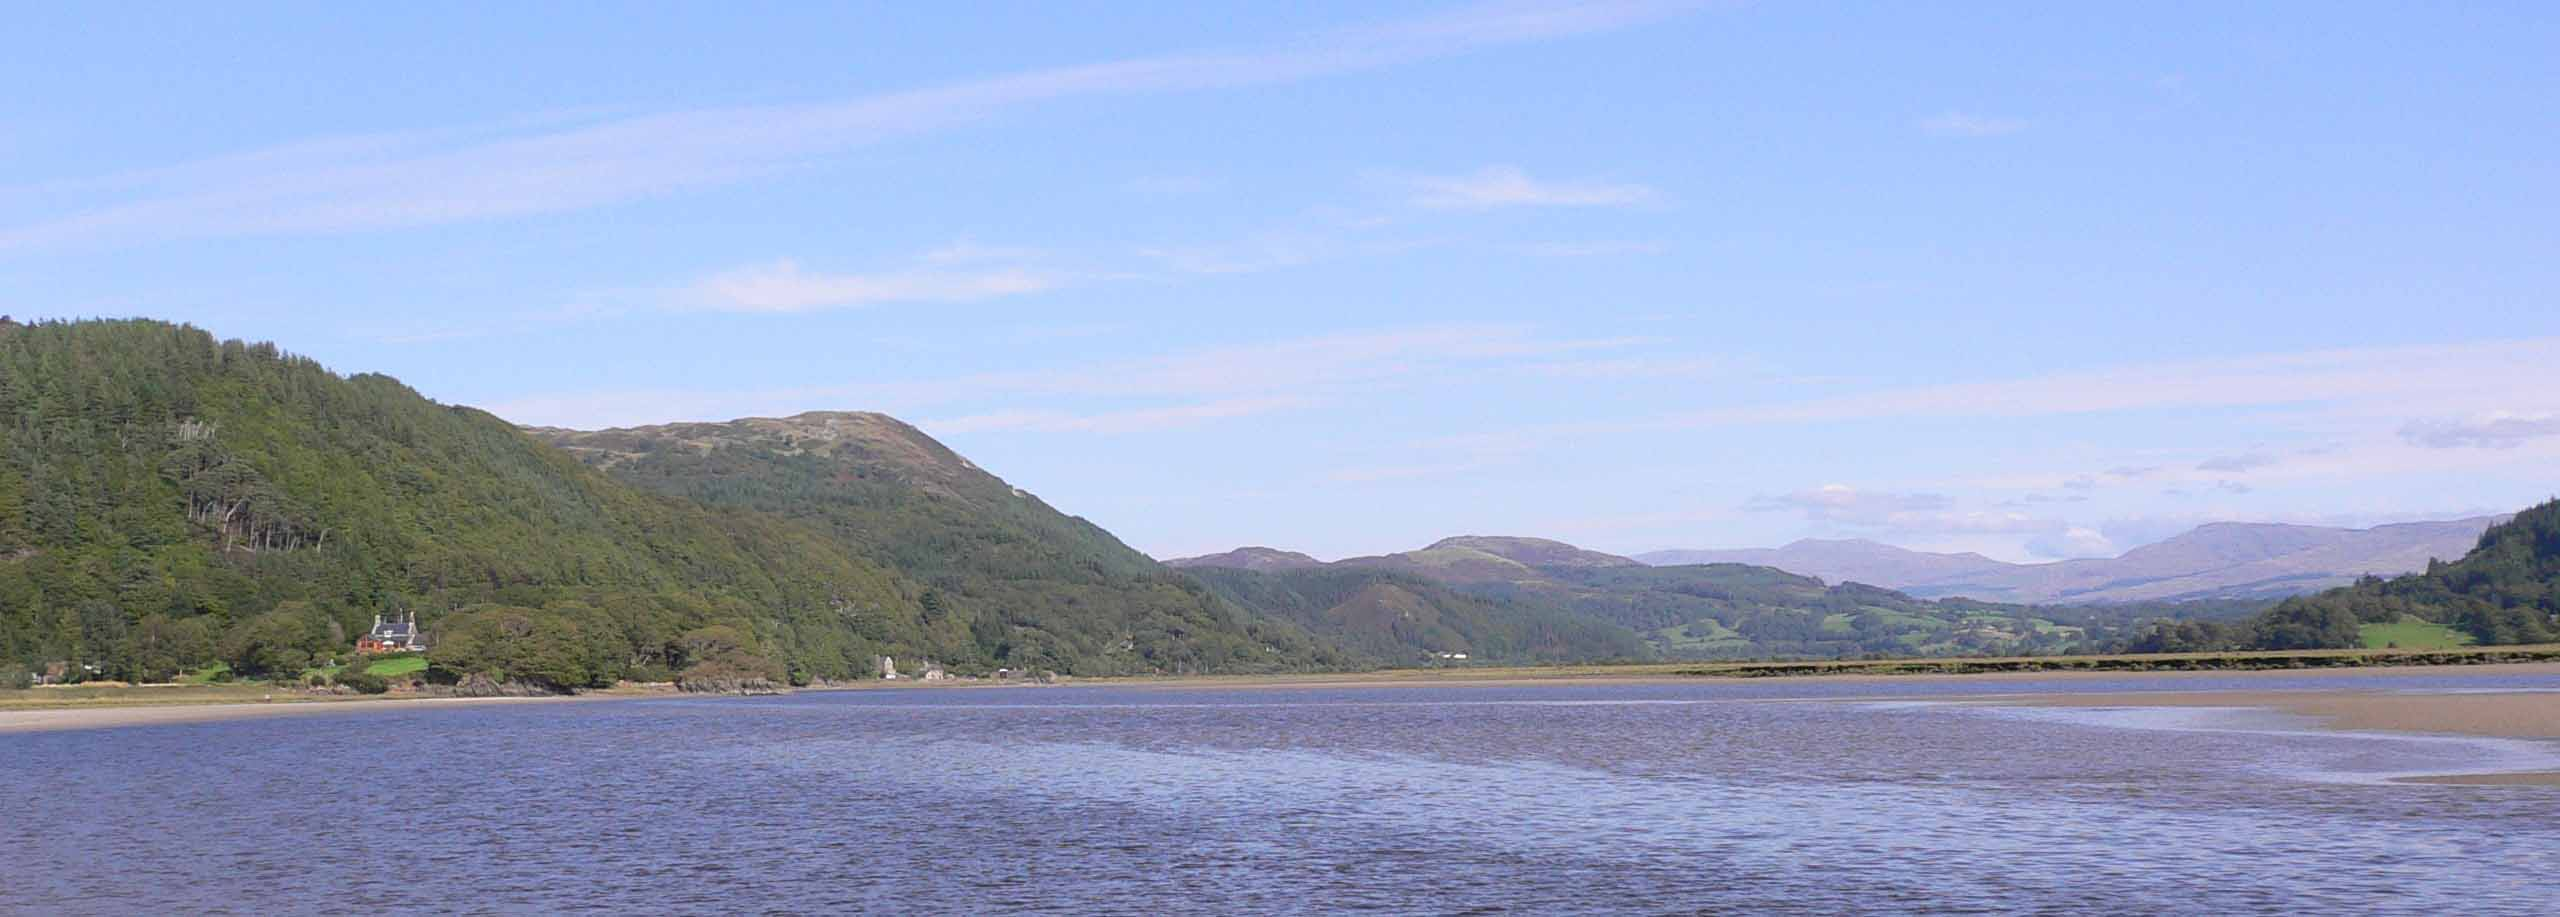 A view from the Mawddach to Whitehorses retreat and Dolgellu by www.paulhoughton.co.uk